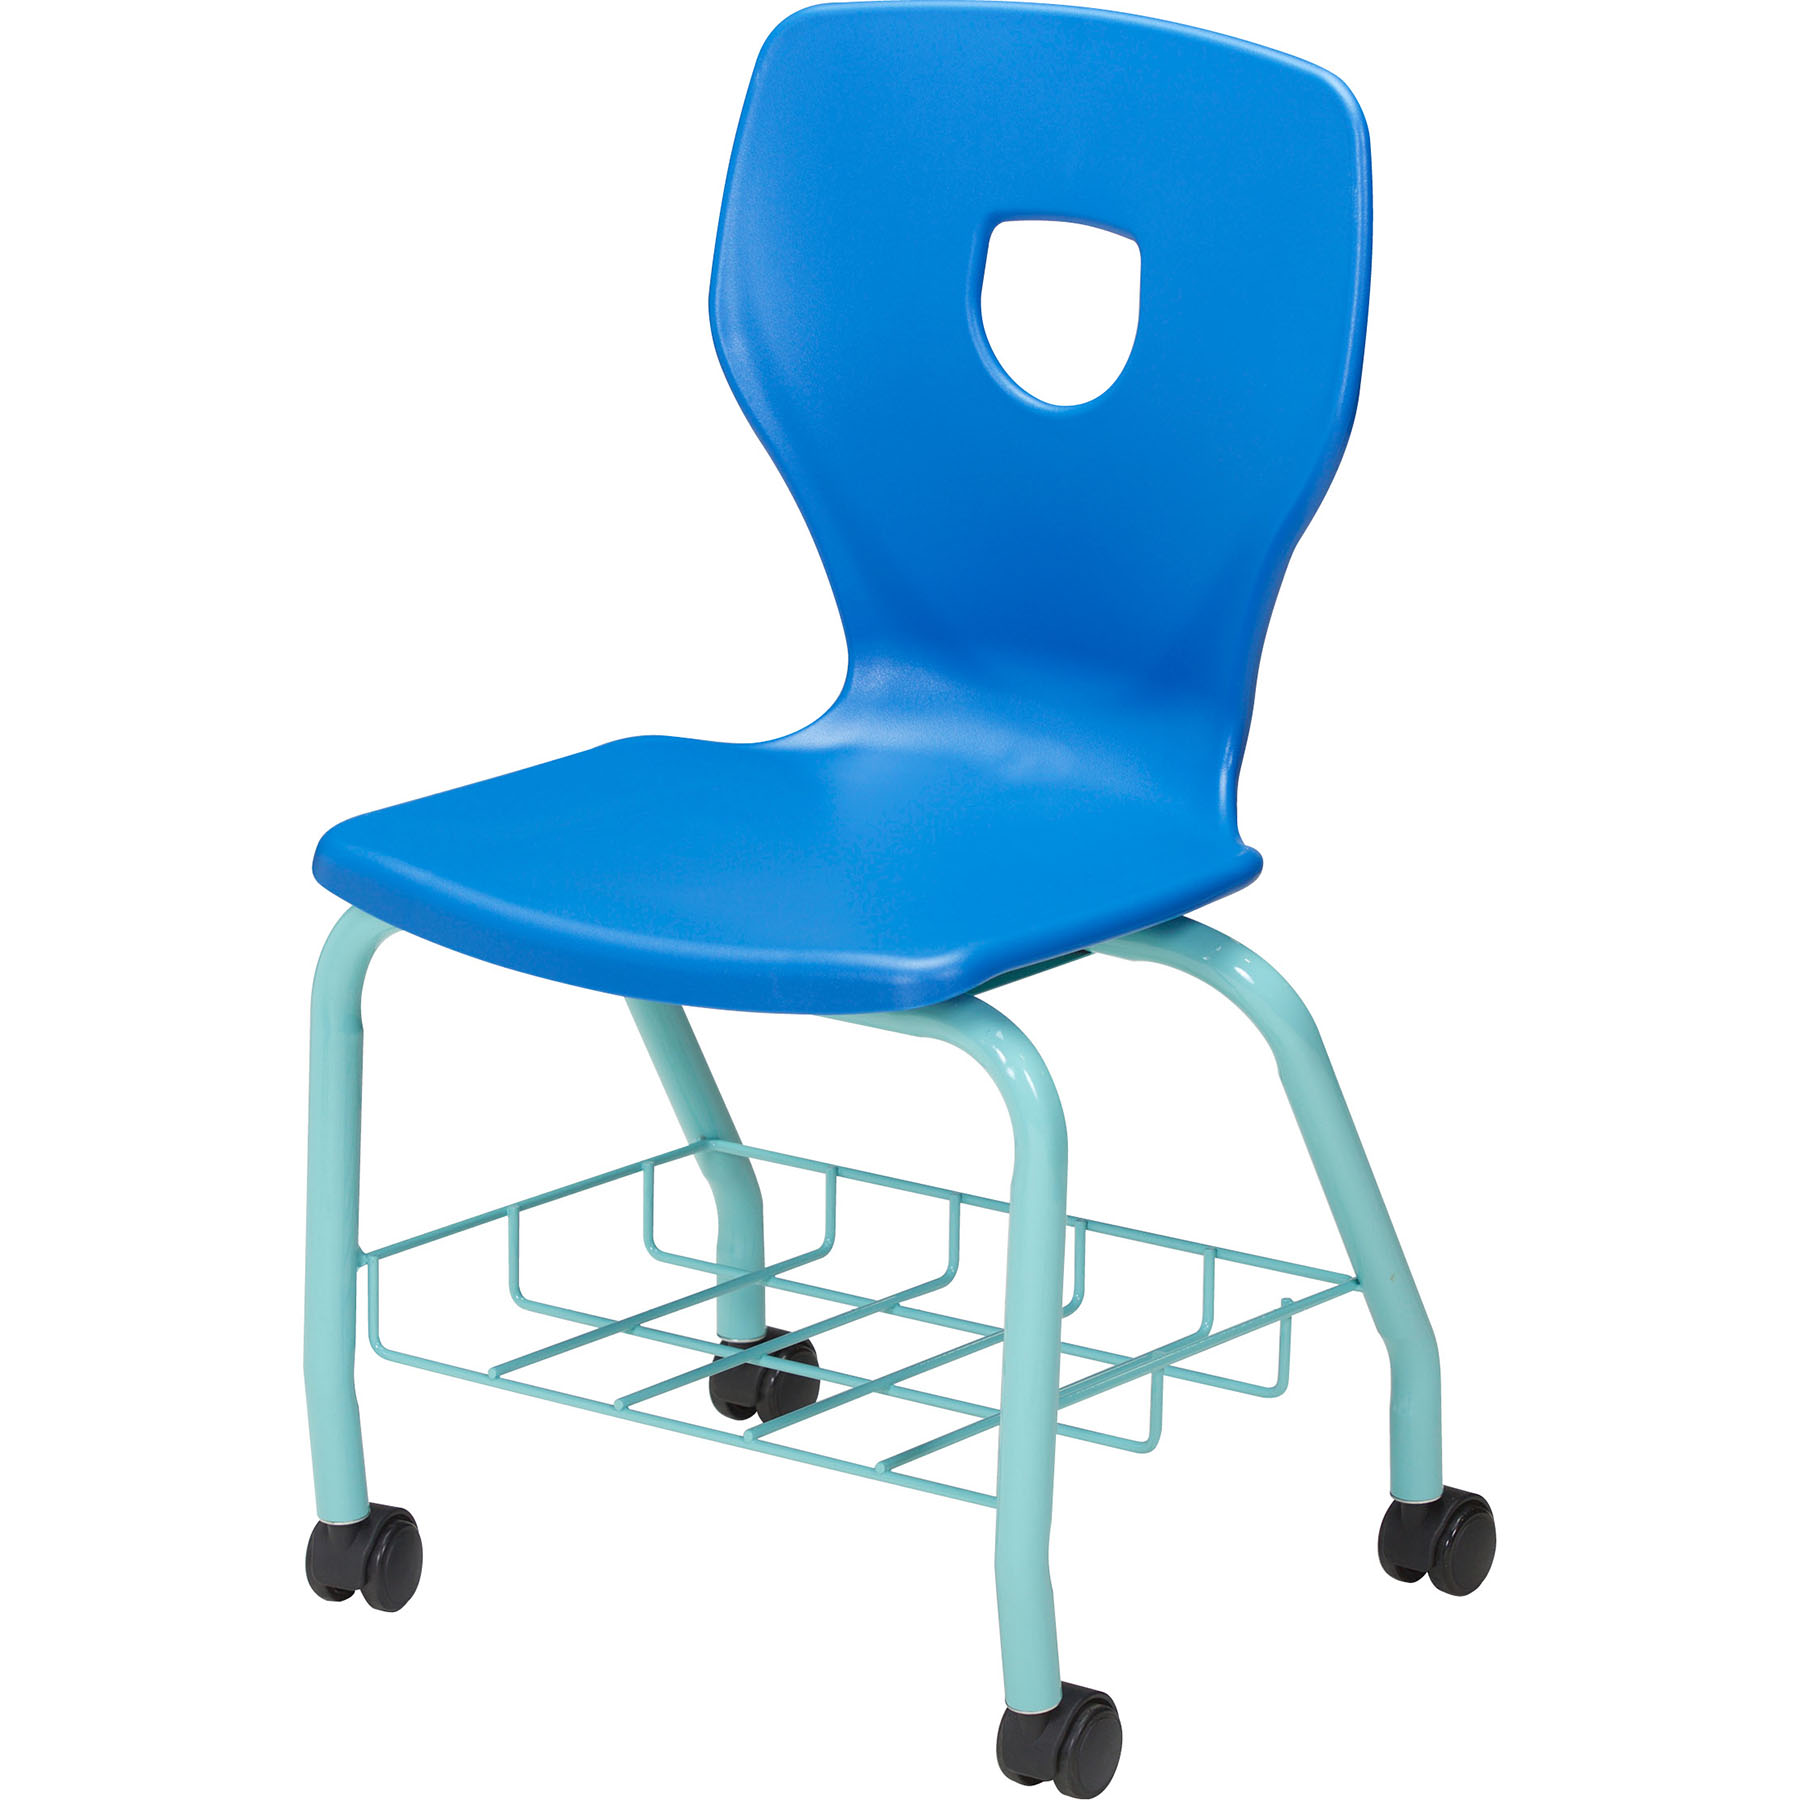 Silhoflex book basket chair with casters